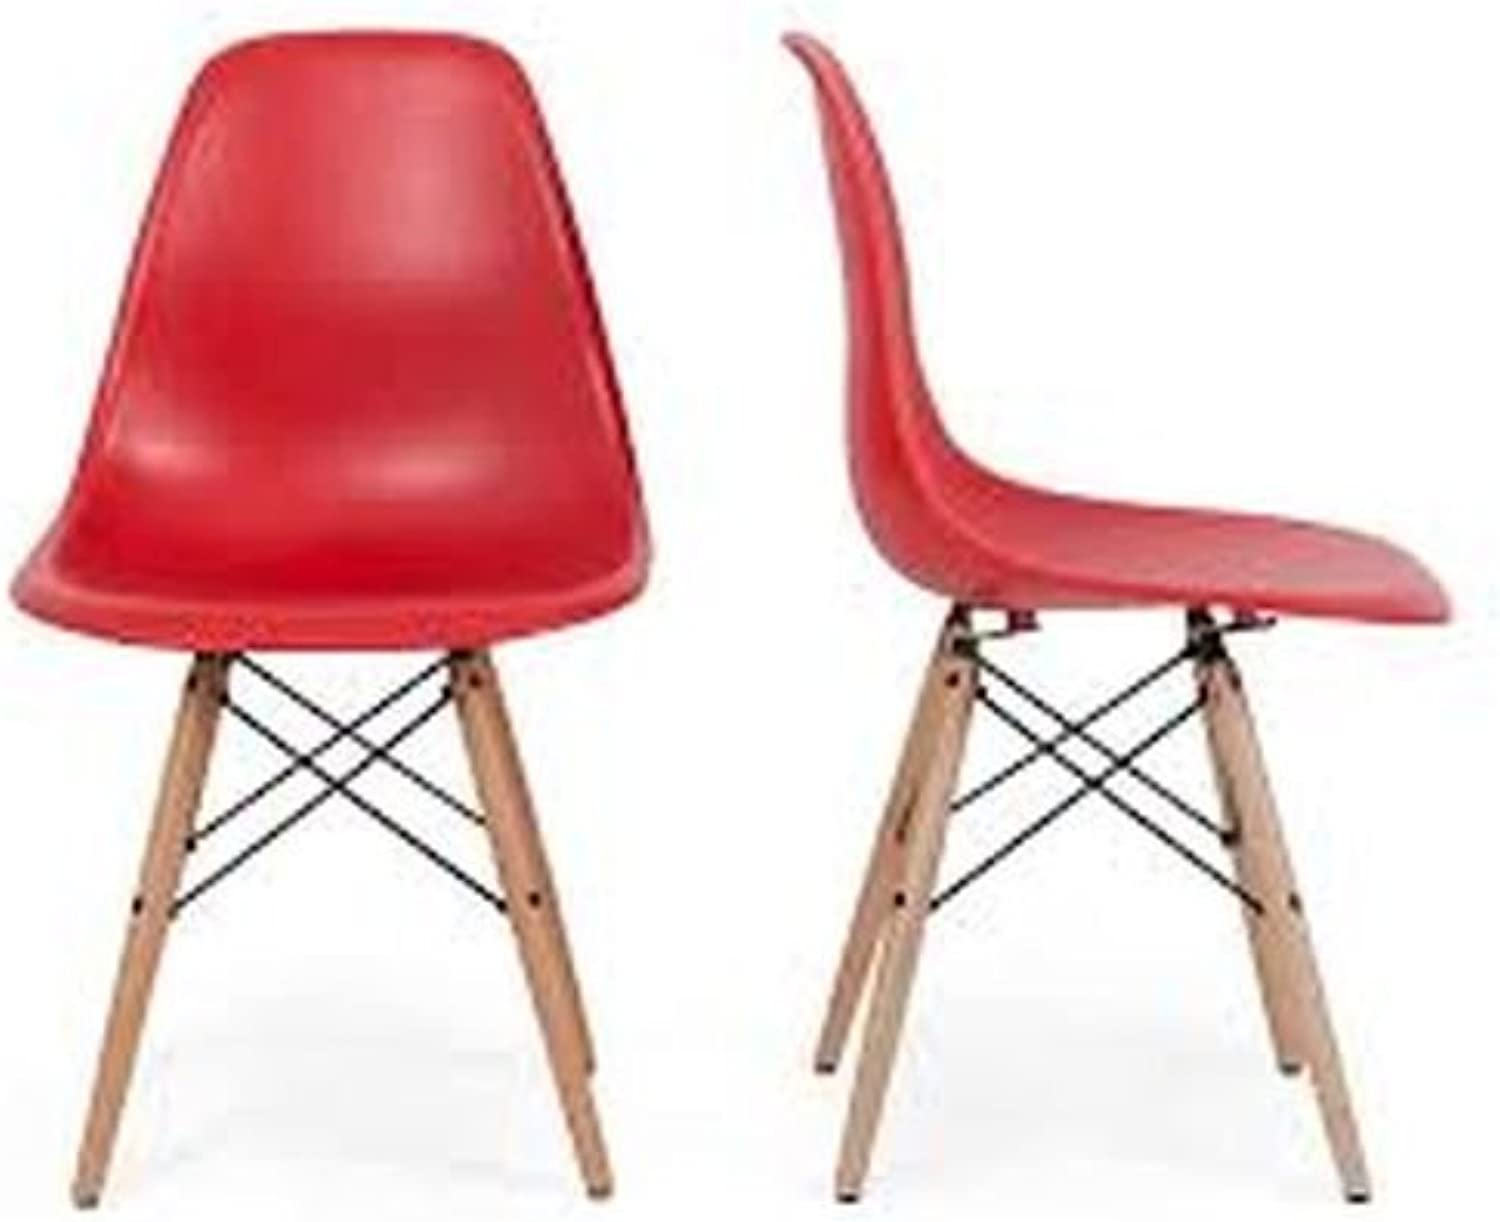 Meubles House Set of Two (2) Red Eames Style Side Chair Natural Wood Legs Kids Chair